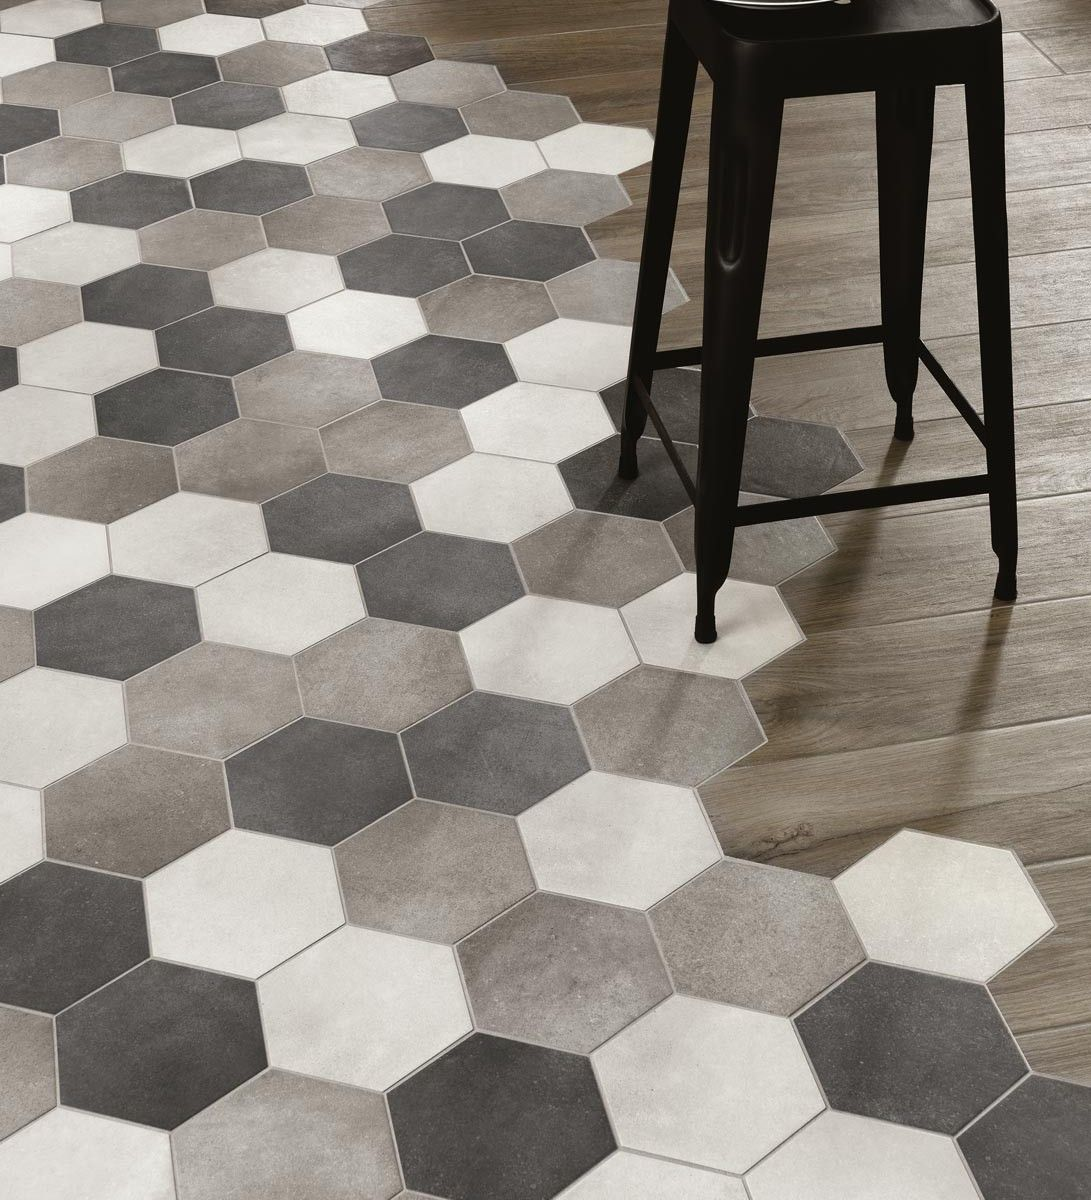 Love this floor finish transition arredamento pinterest hex tile to wood floor transition woodplace ragno marazzi group love this style dailygadgetfo Choice Image